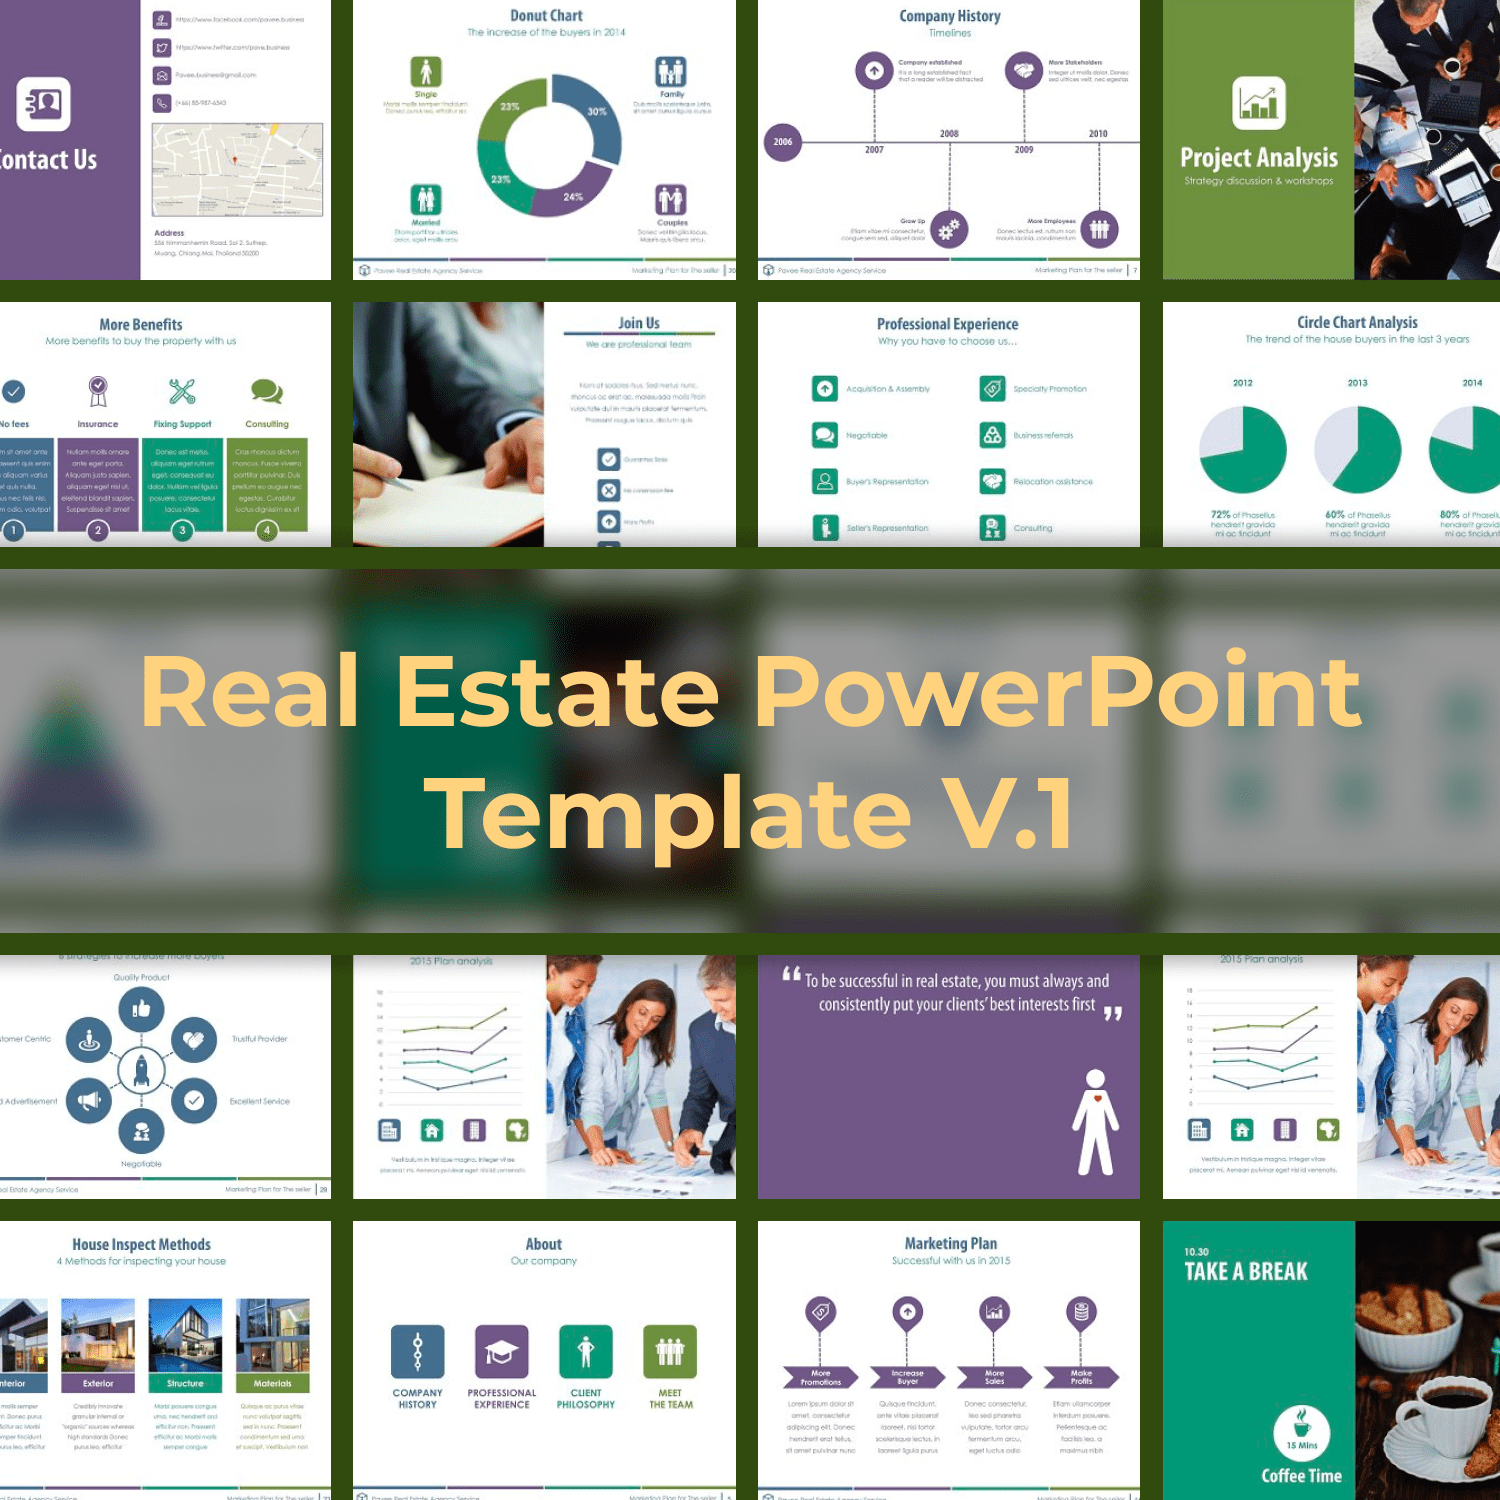 Real Estate PowerPoint Template V.1 by MasterBundles.